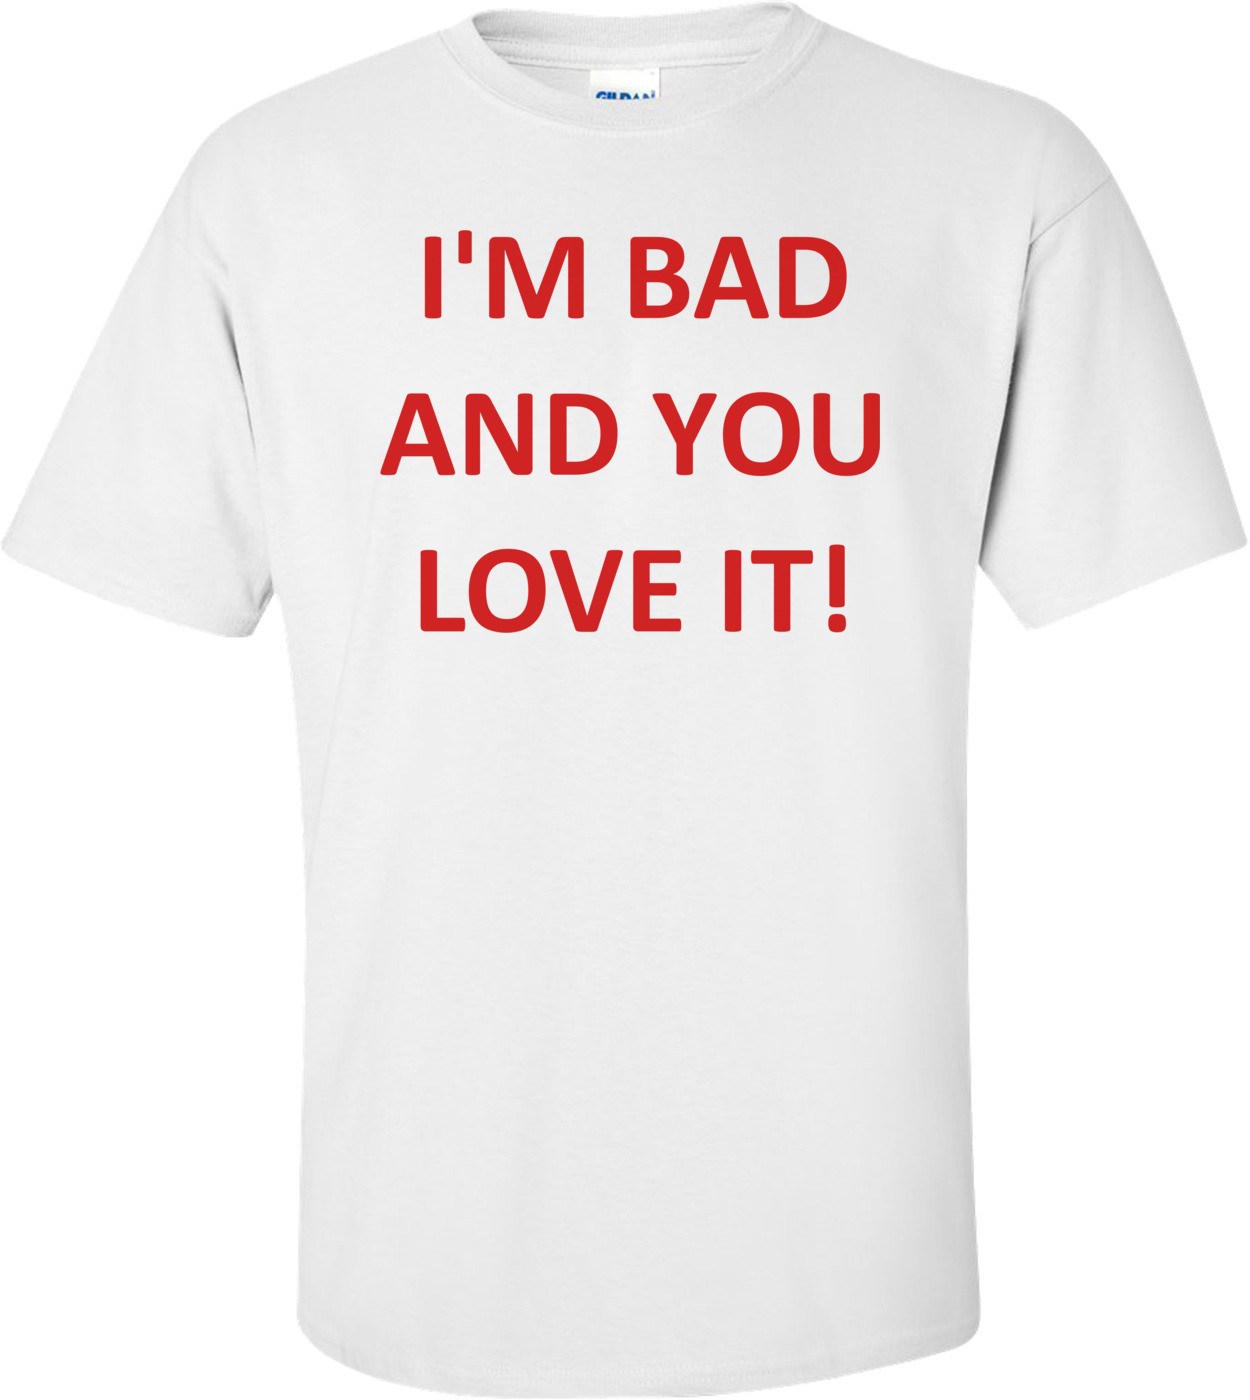 I'M BAD AND YOU LOVE IT! Shirt